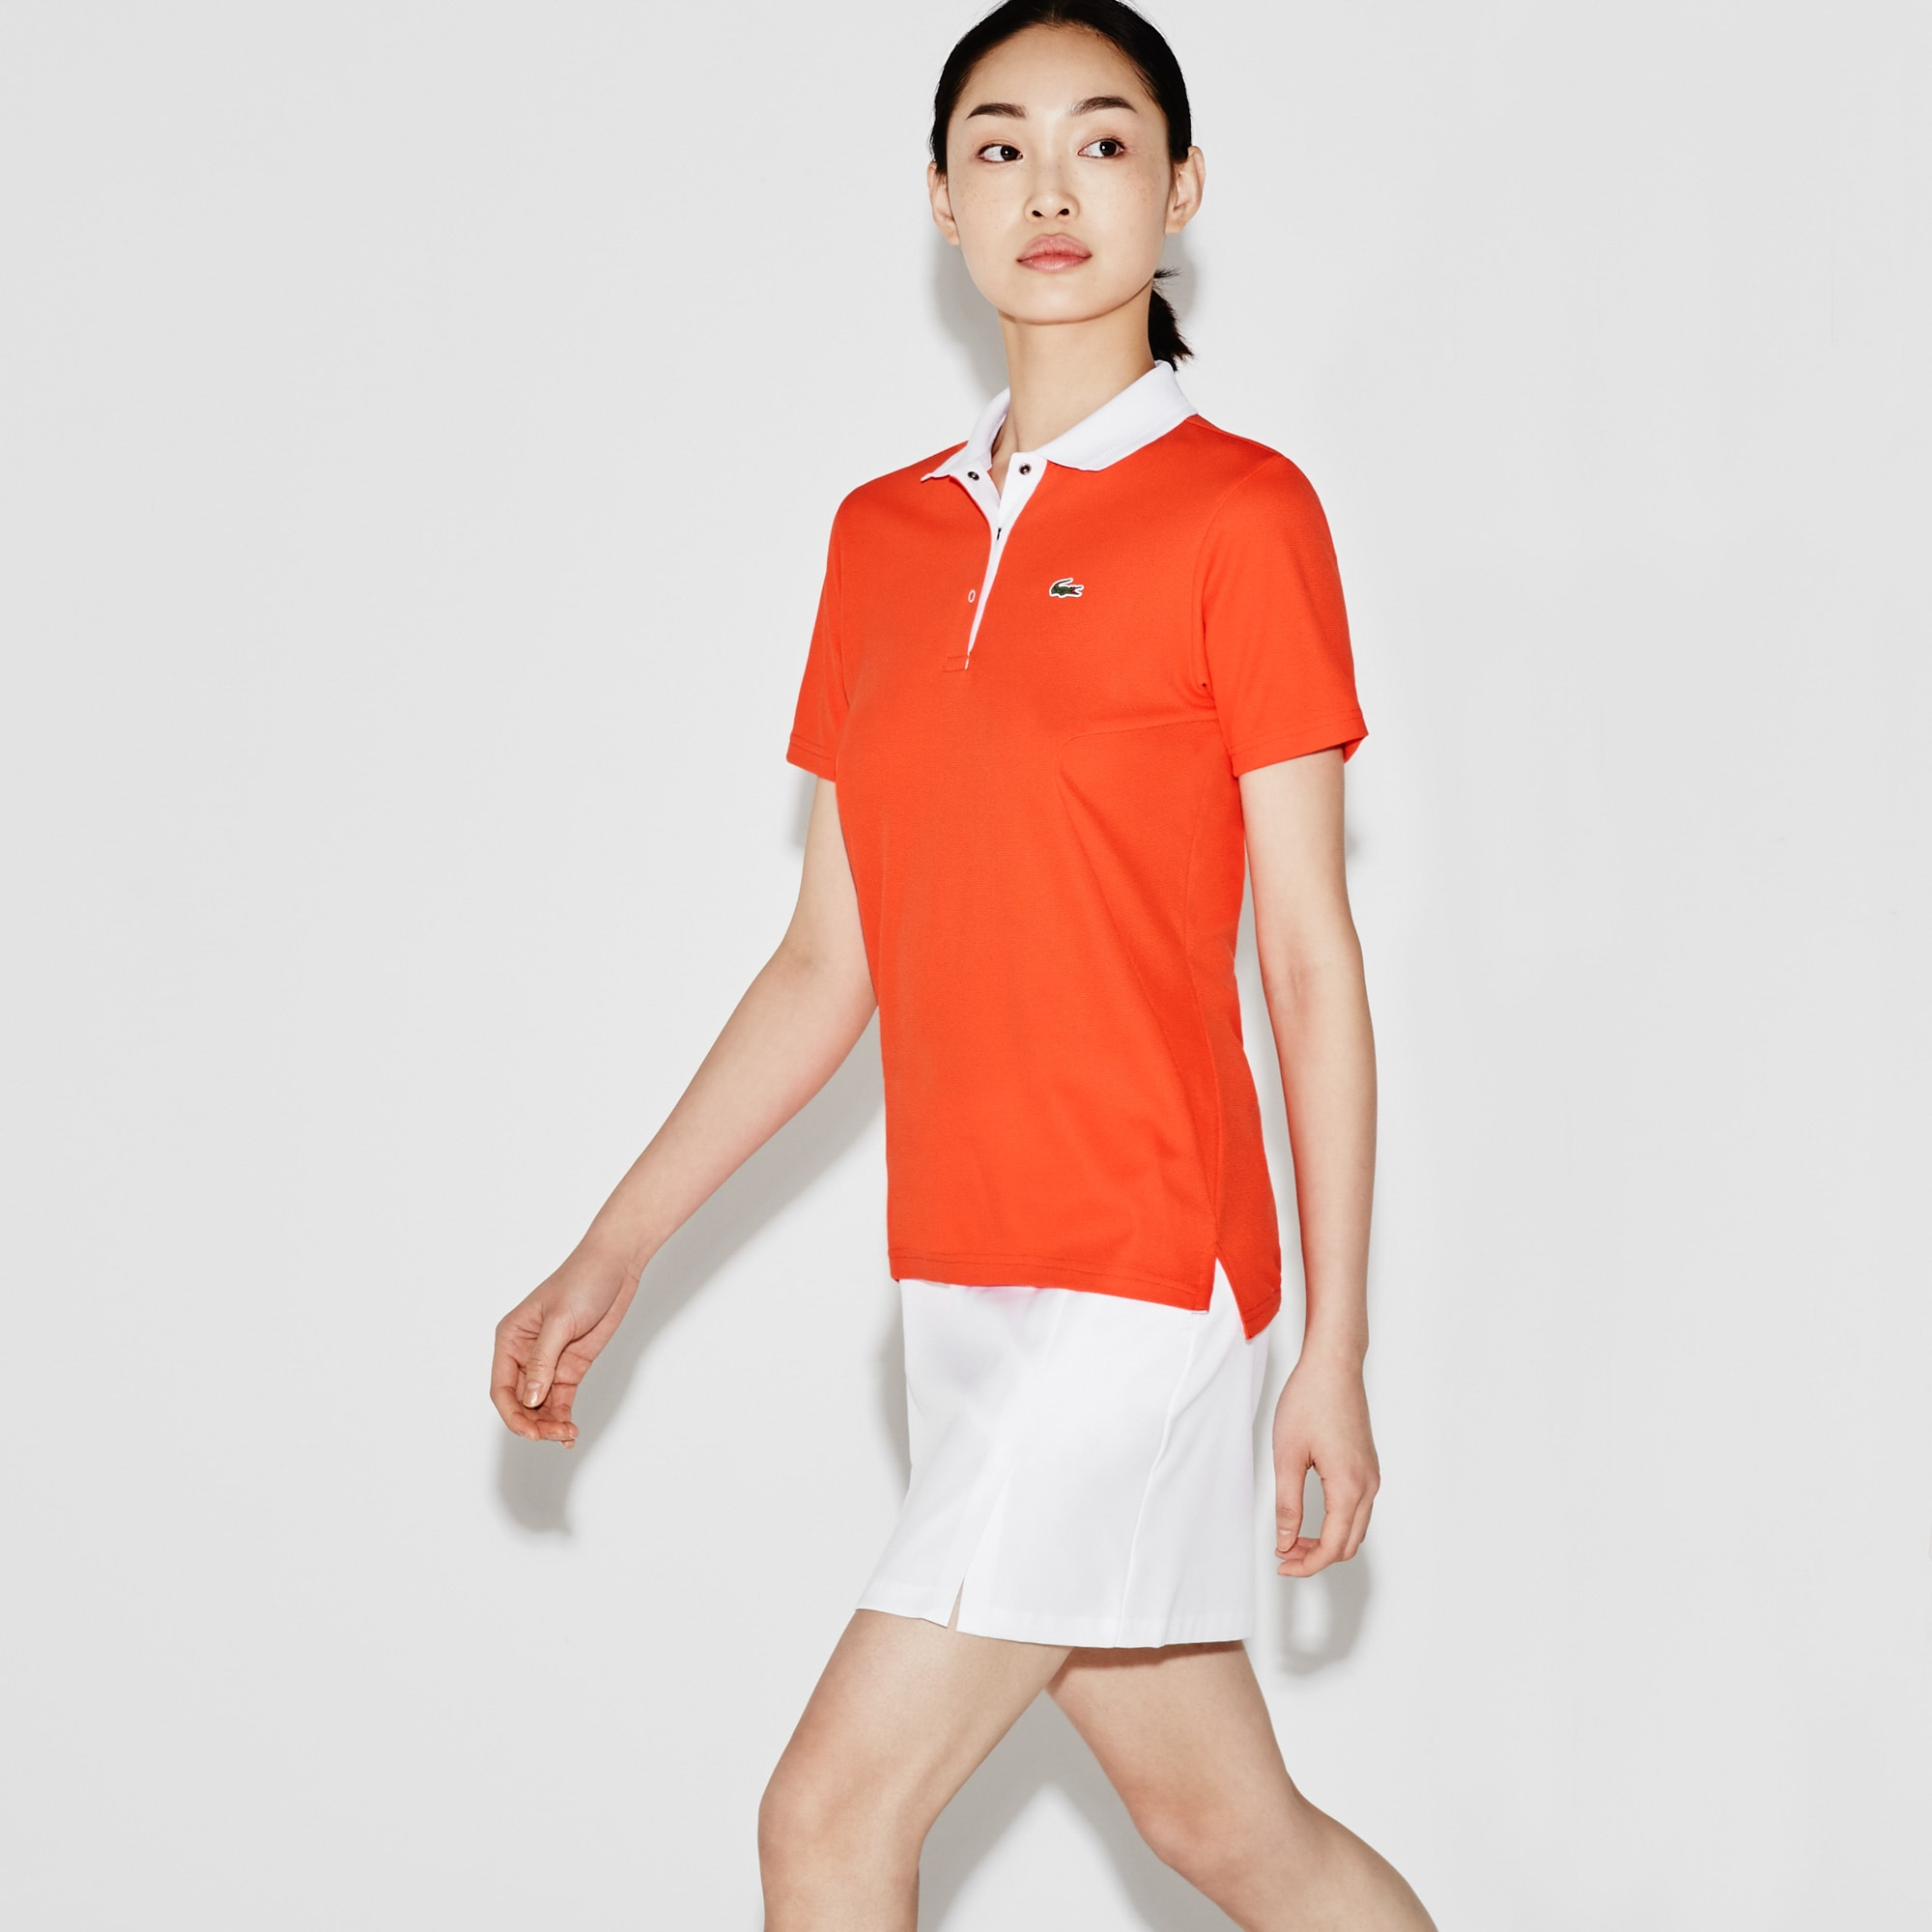 Women'S Sport Golf Tech Honeycomb Knit Polo in Mexico Red/White from Lacoste